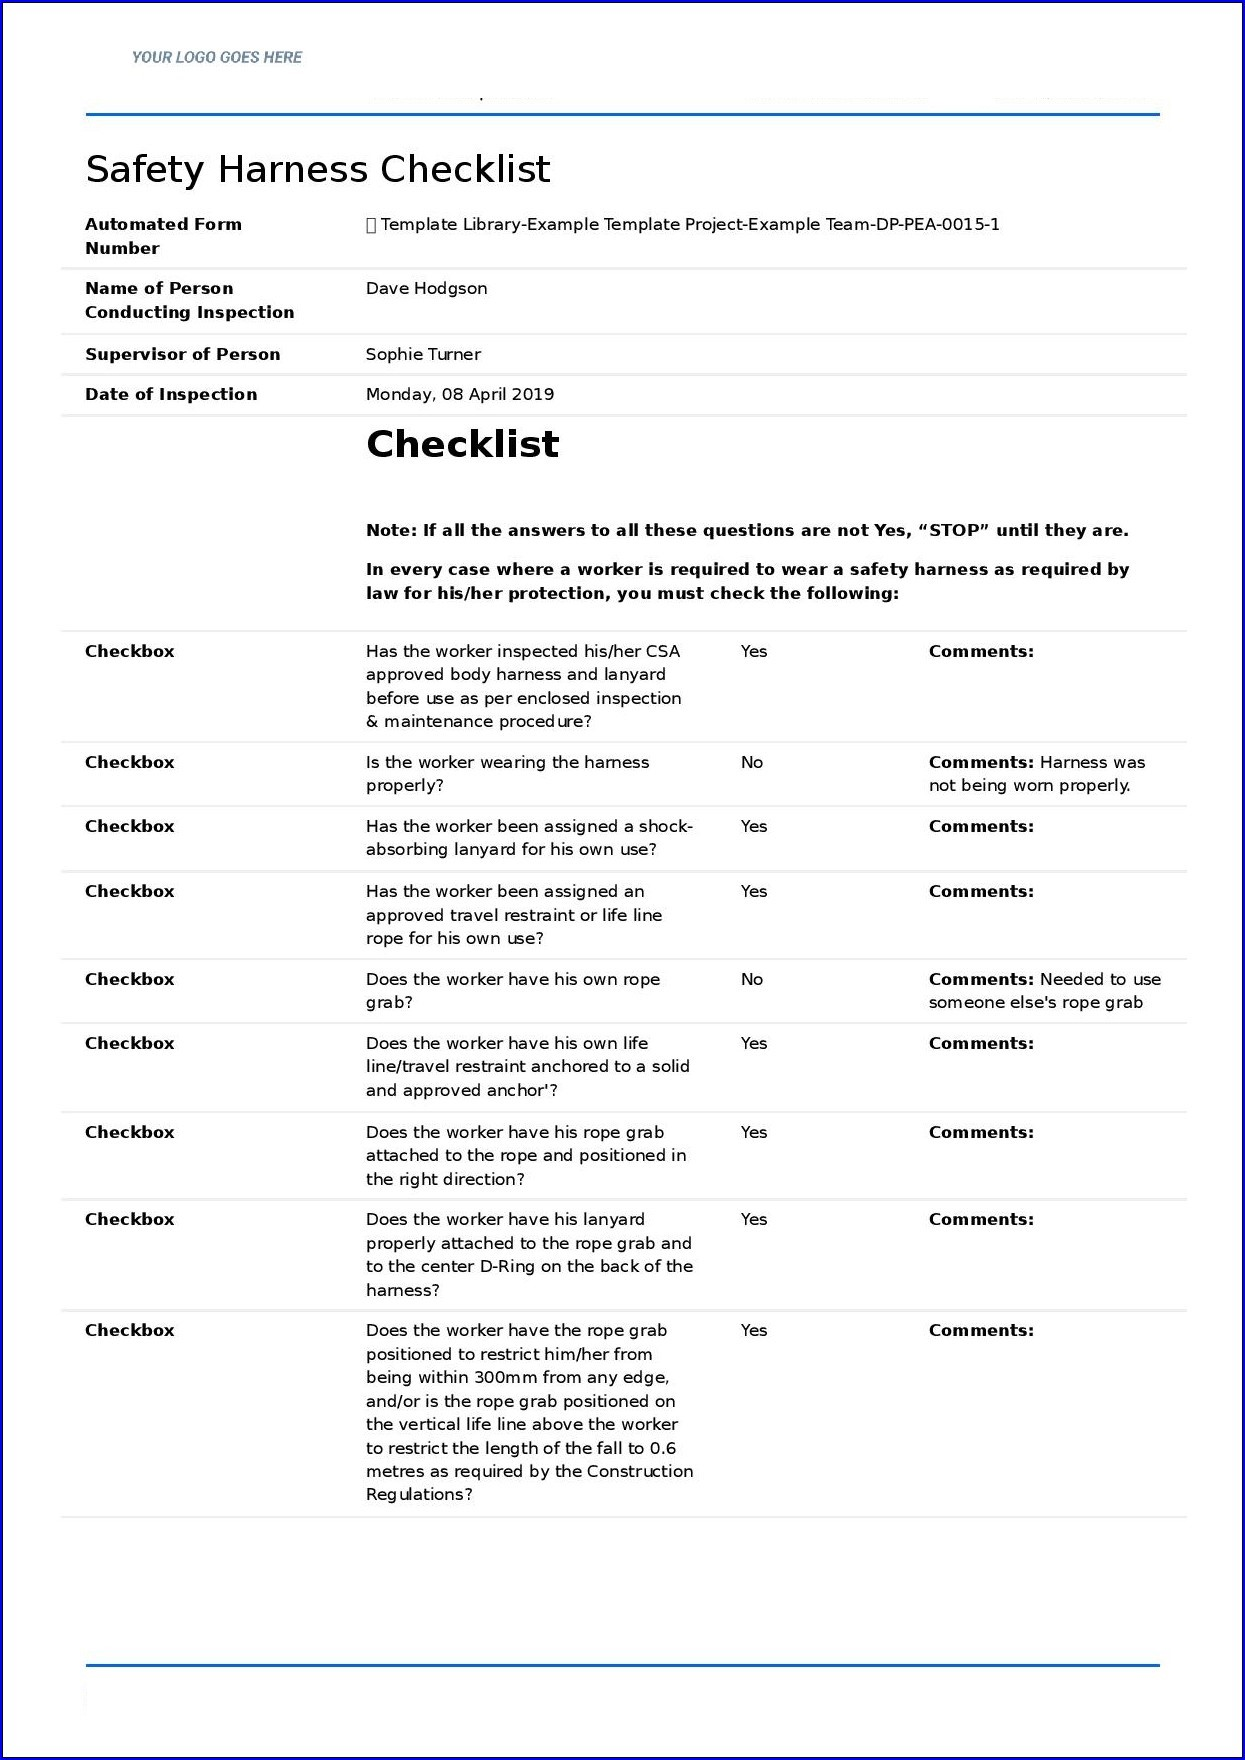 Example of Safety Checklist Template